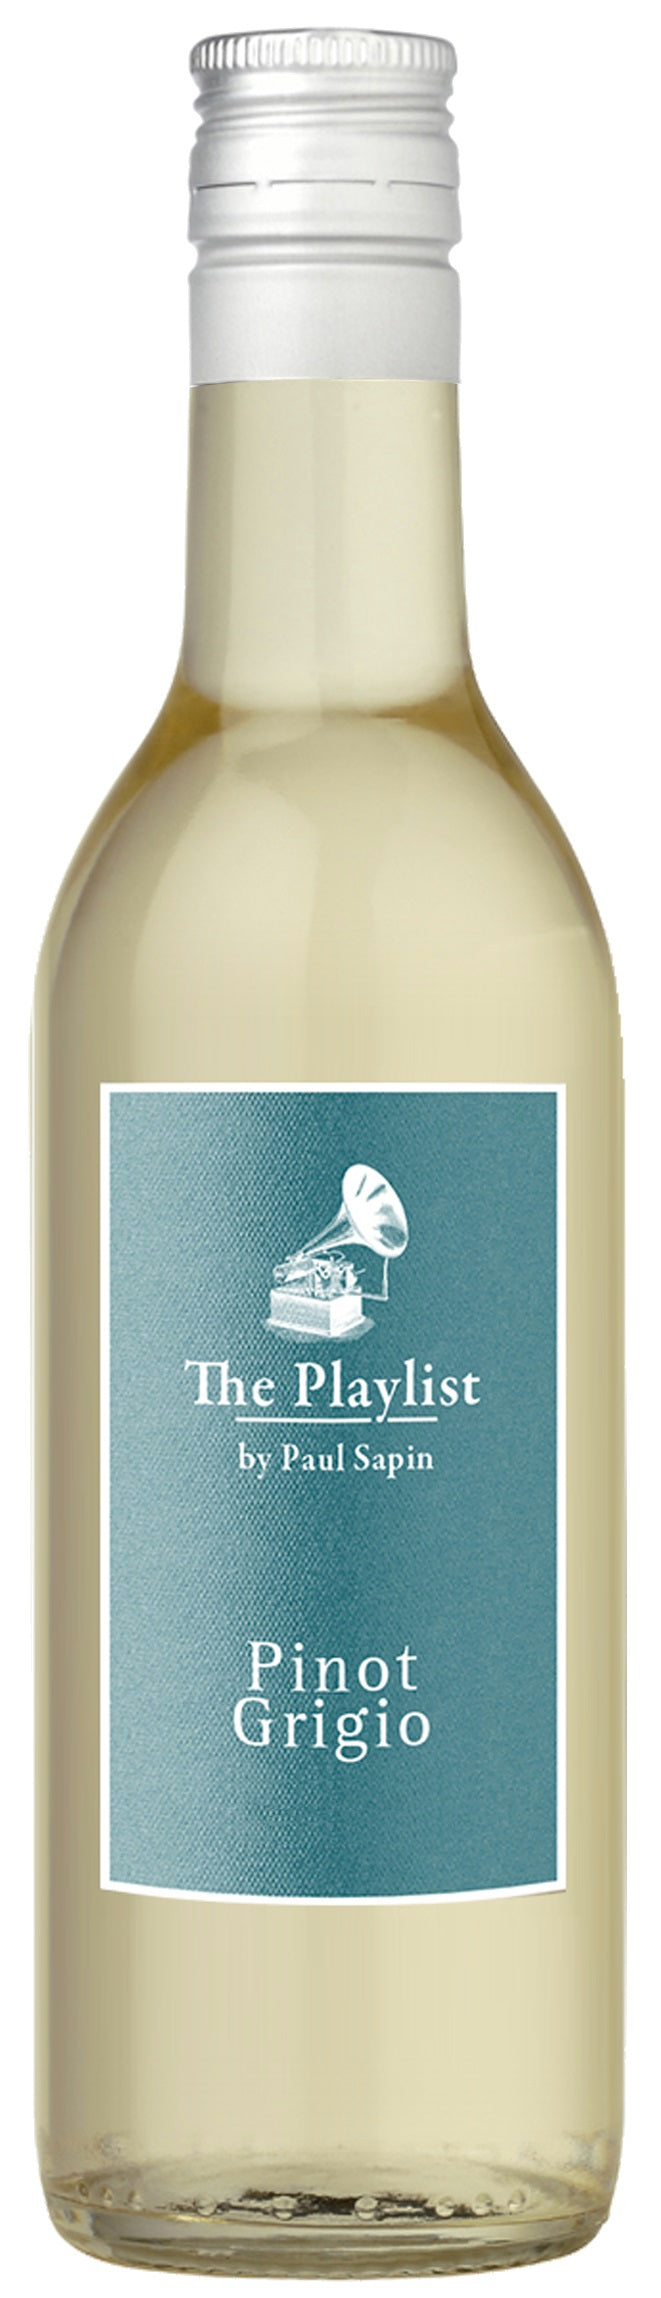 PLAYLIST PINOT GRIGIO 187ML - Premier Cru Retail Stores